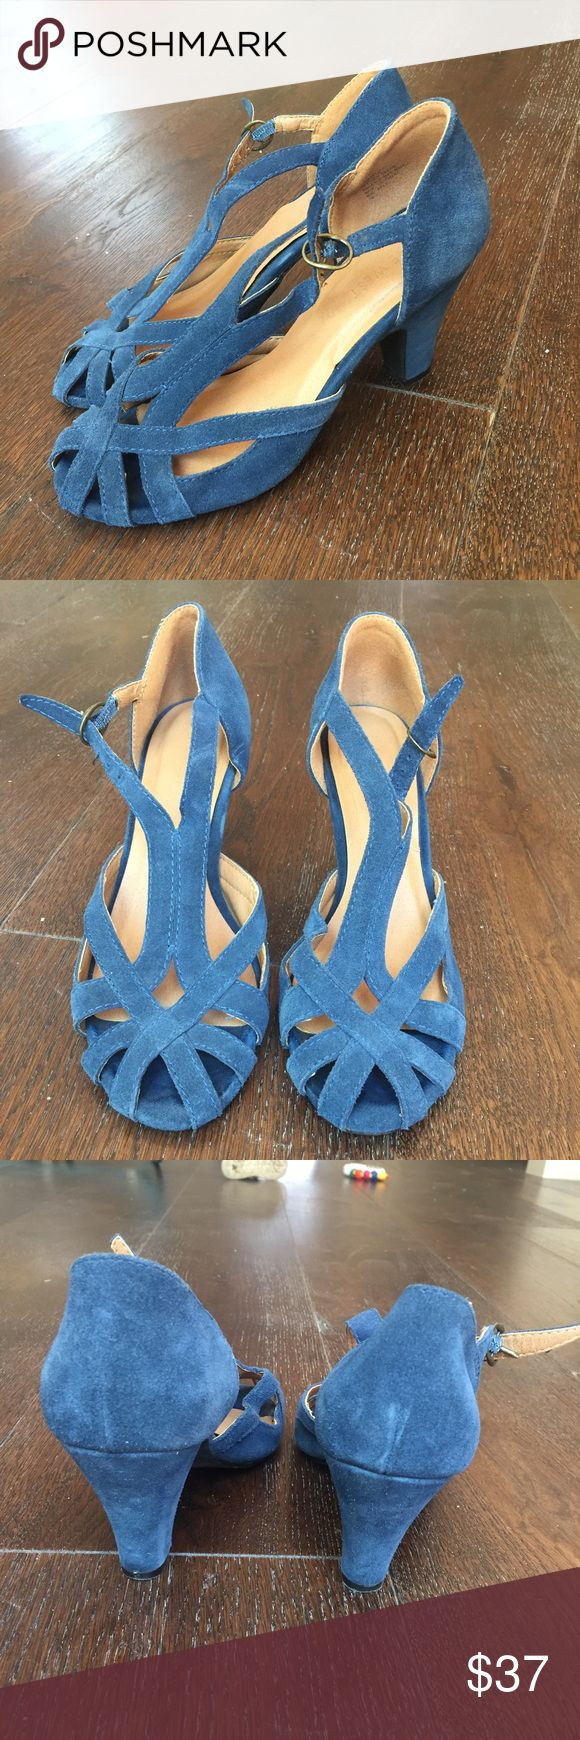 Nine West pumps Really cute dark blue Nine West pumps! Gently used but in really excellent condition! Shoes Heels